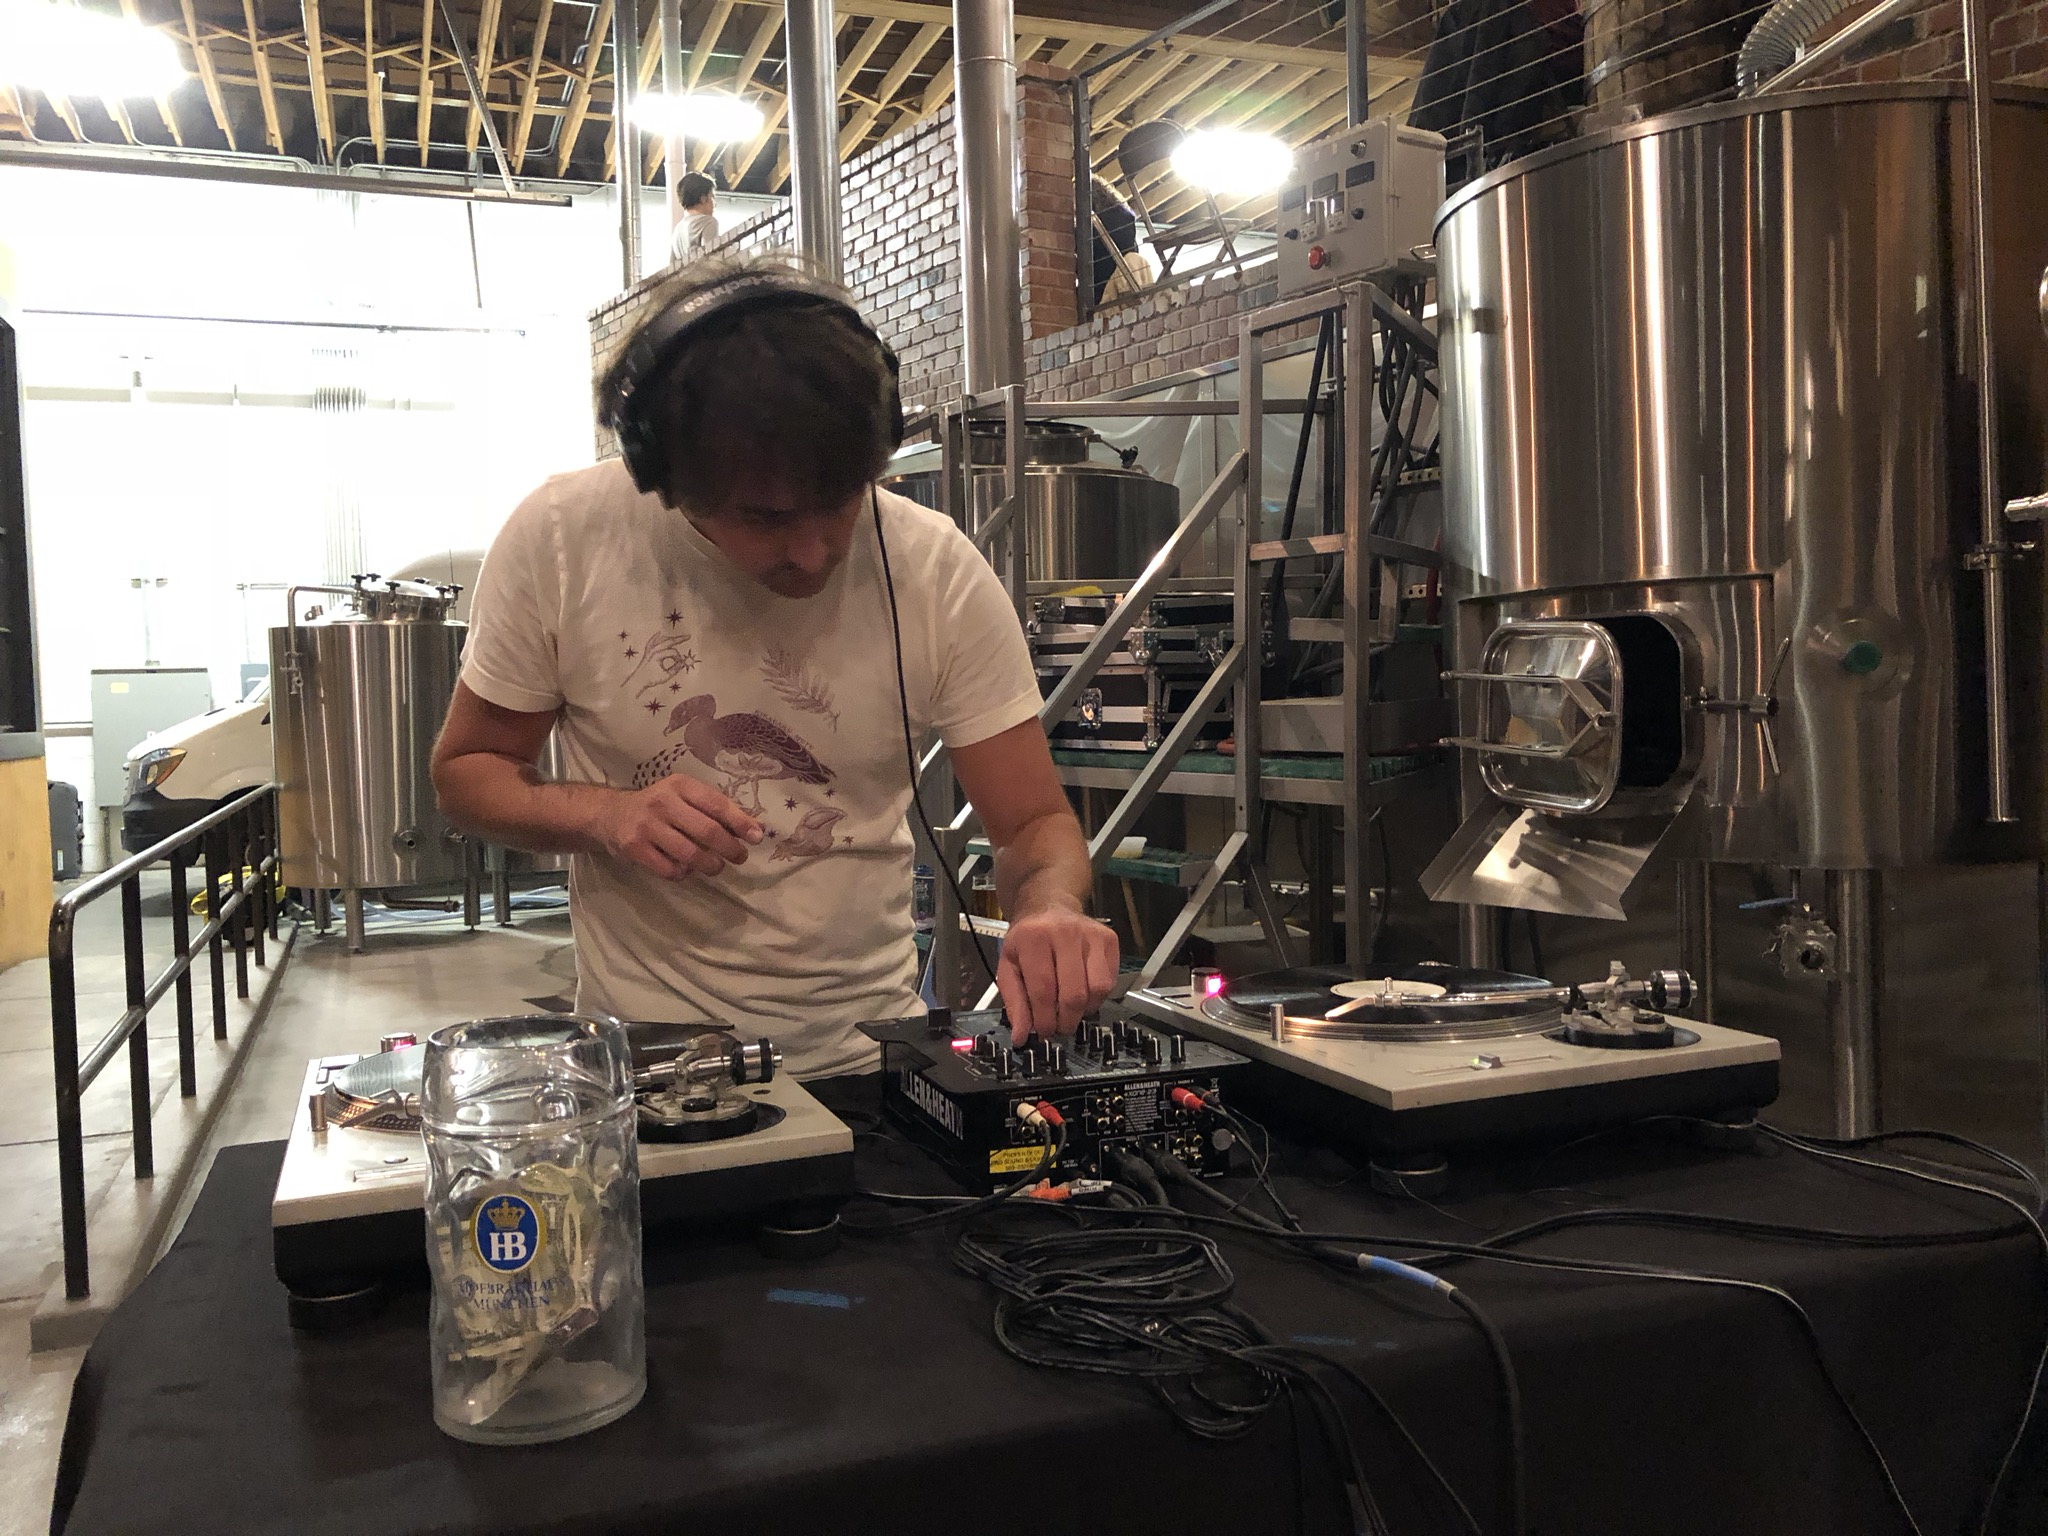 Travis working the turntable at The Commons last day. (photo by Cat Stelzer